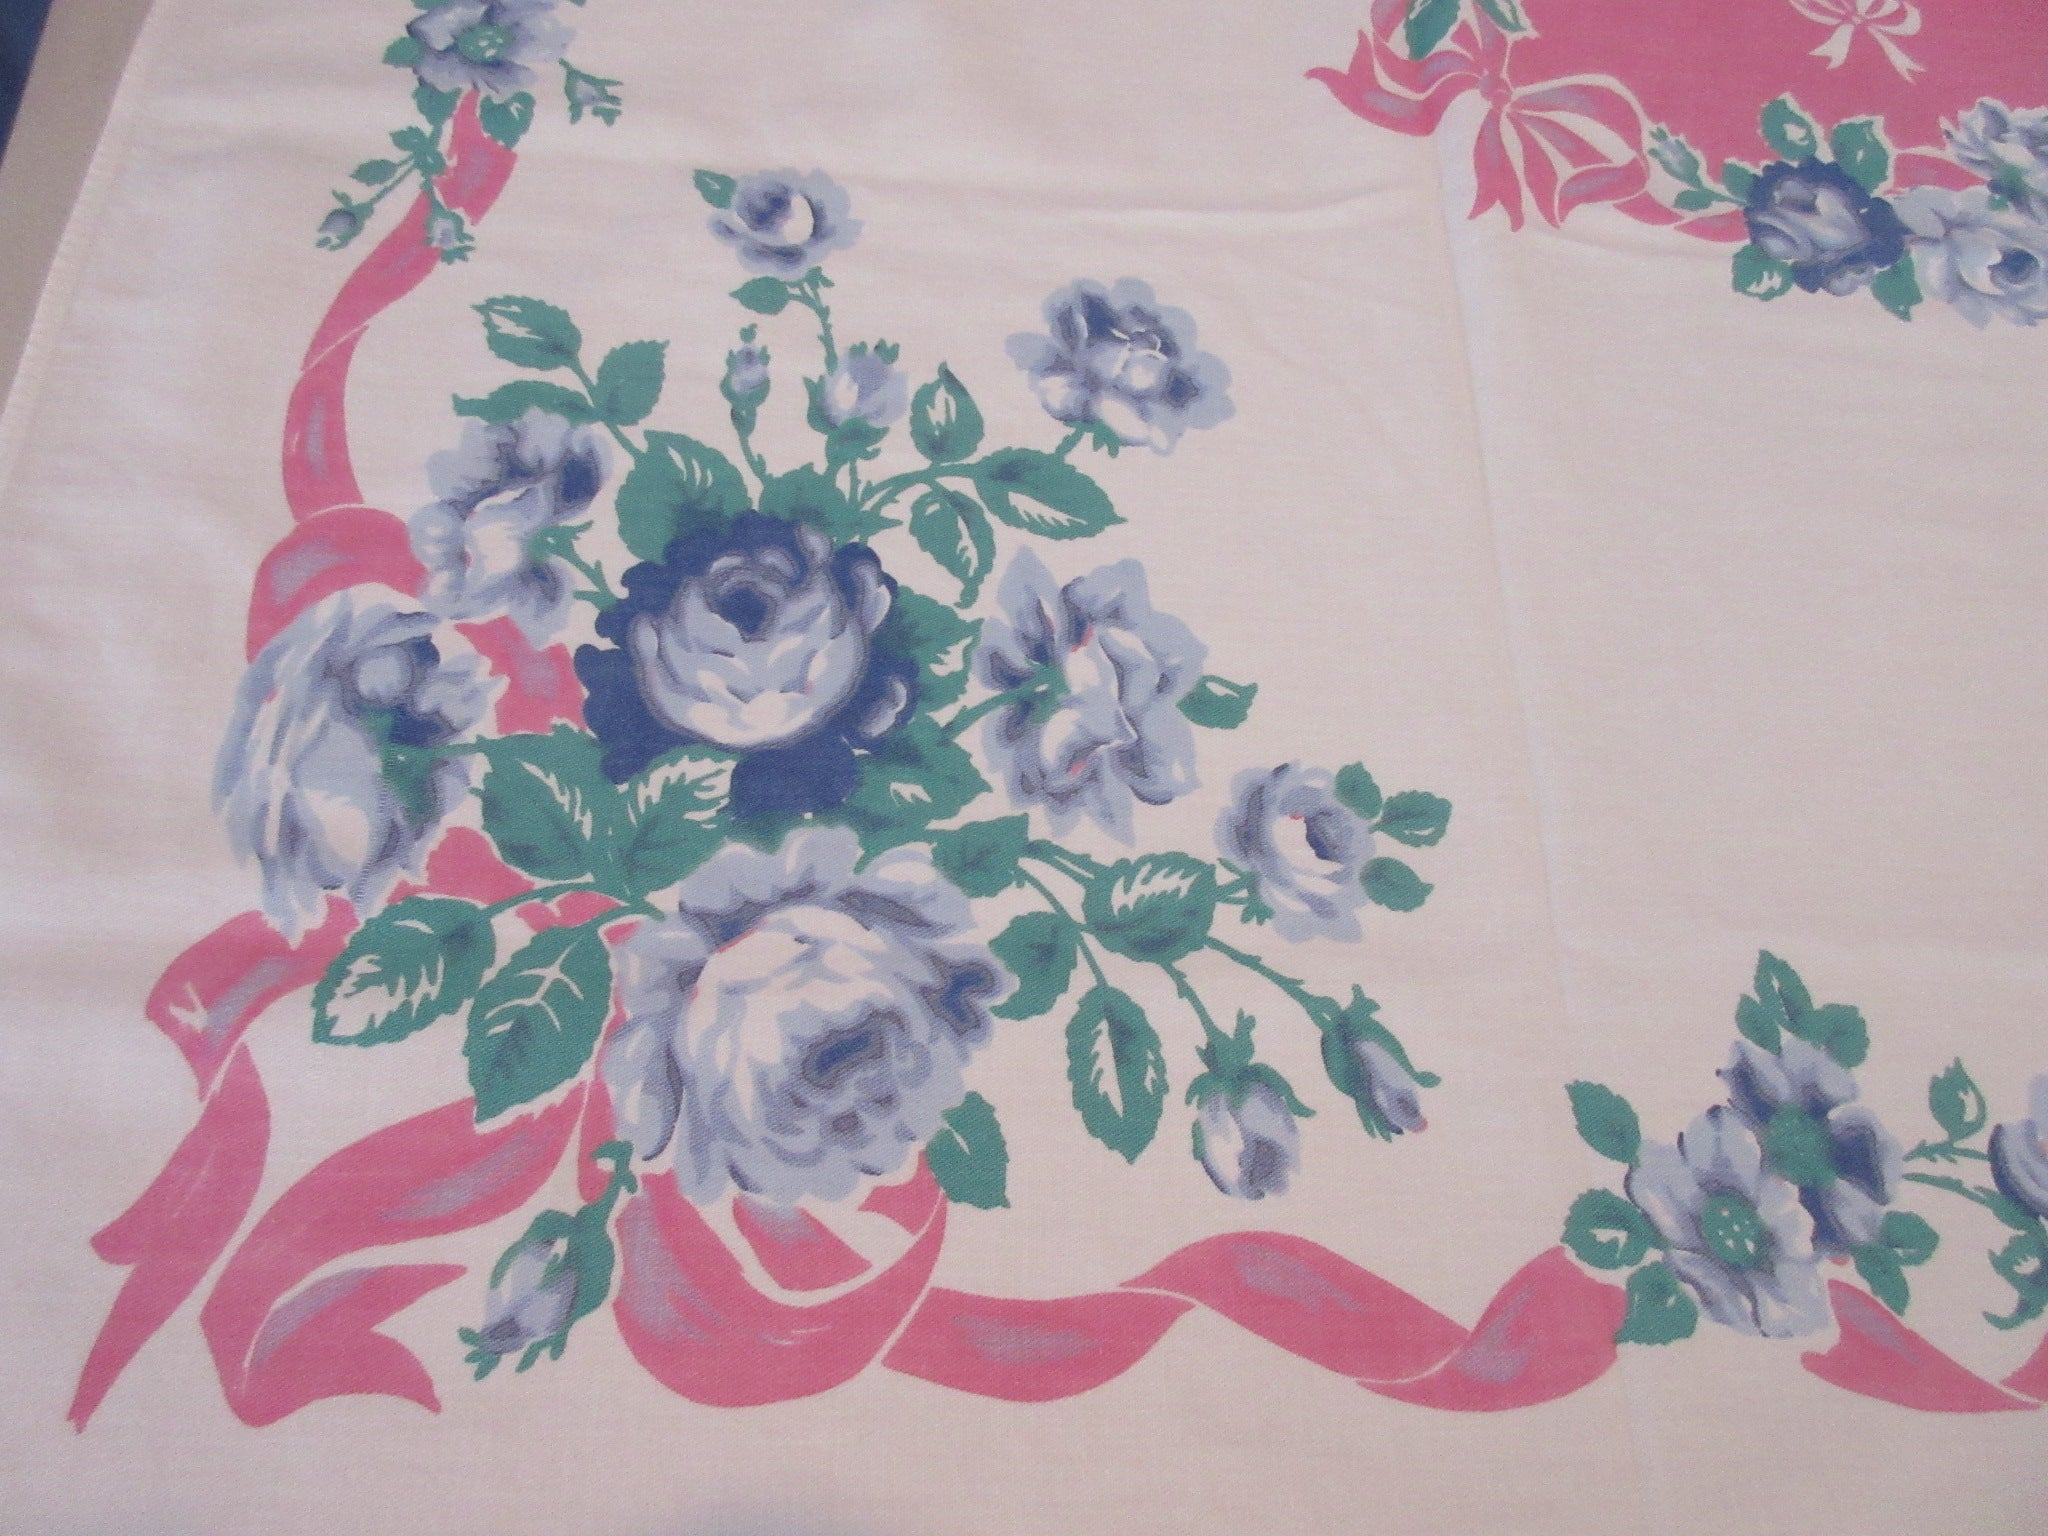 Romantic Blue Roses Pink Ribbons Floral Vintage Printed Tablecloth (64 X 51)